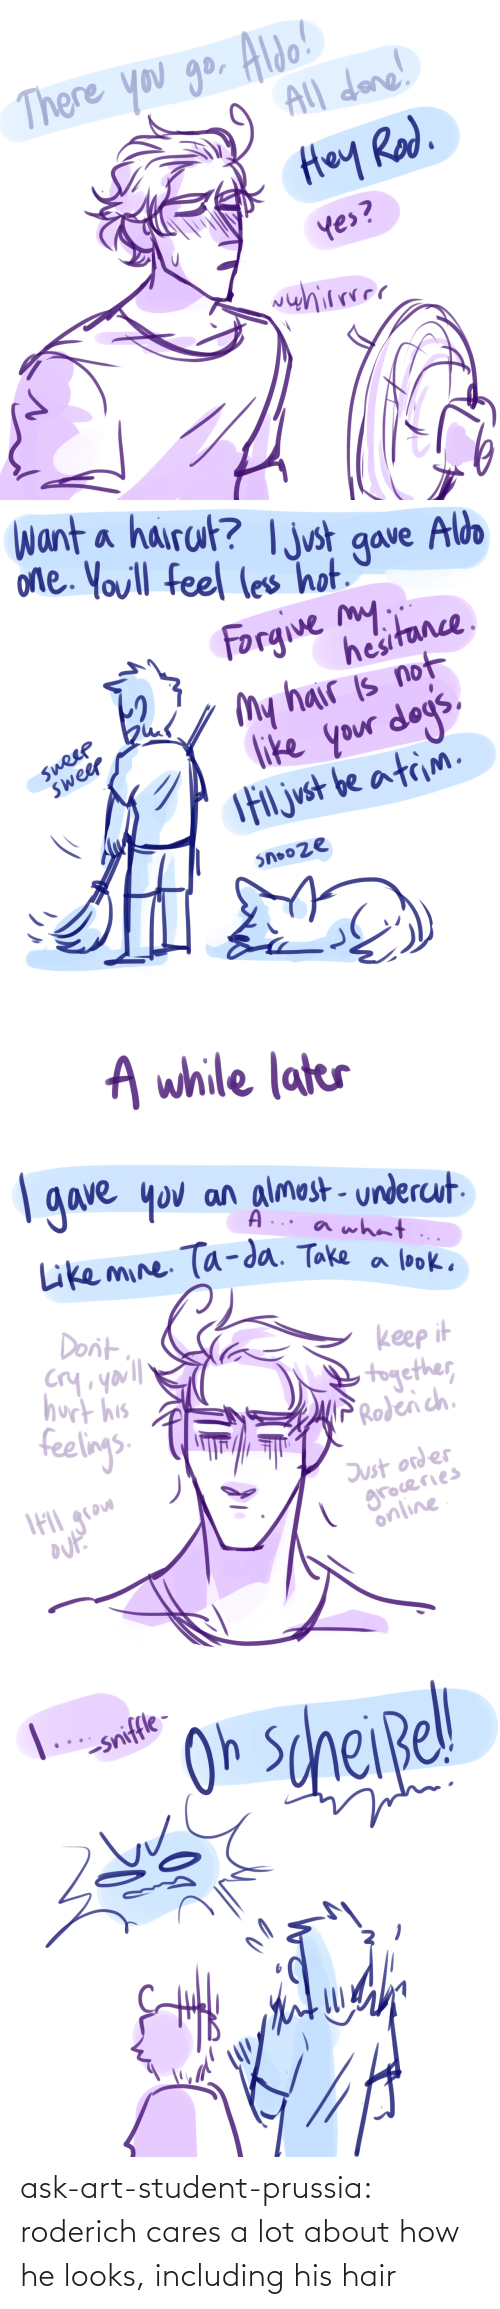 Cares: ask-art-student-prussia:  roderich cares a lot about how he looks, including his hair